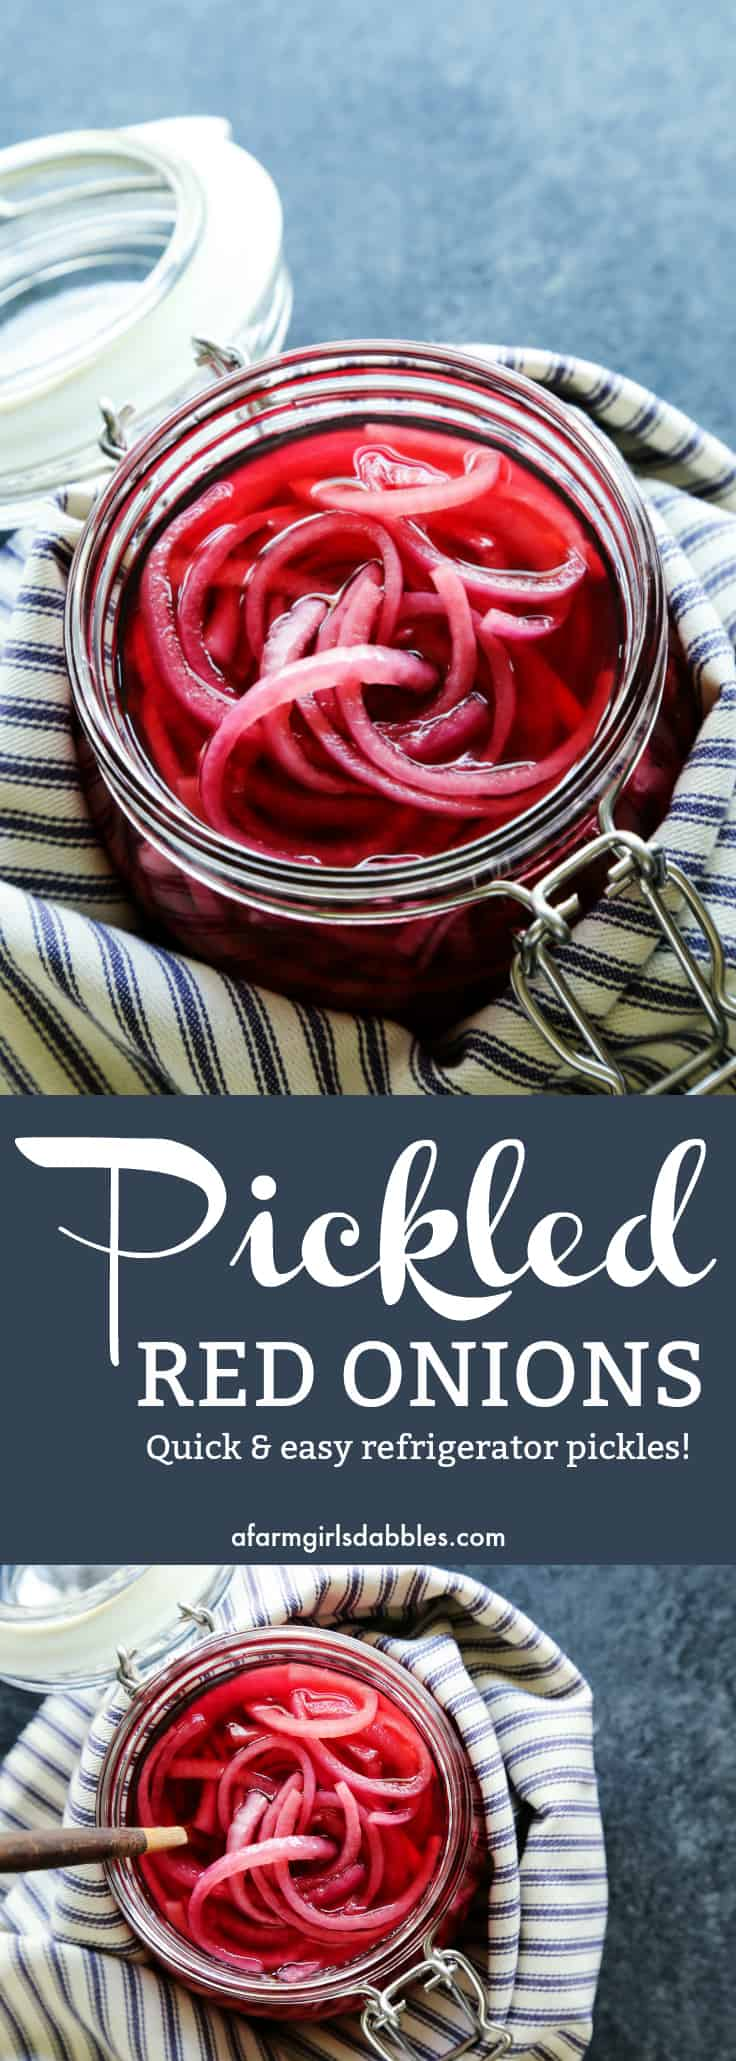 Pickled Red Onions from afarmgirlsdabbles.com - A truly versatile and addictive condiment, these pickled red onions take just a few minutes to make! #redonions #redonion #pickled #pickledredonions #pickledonions